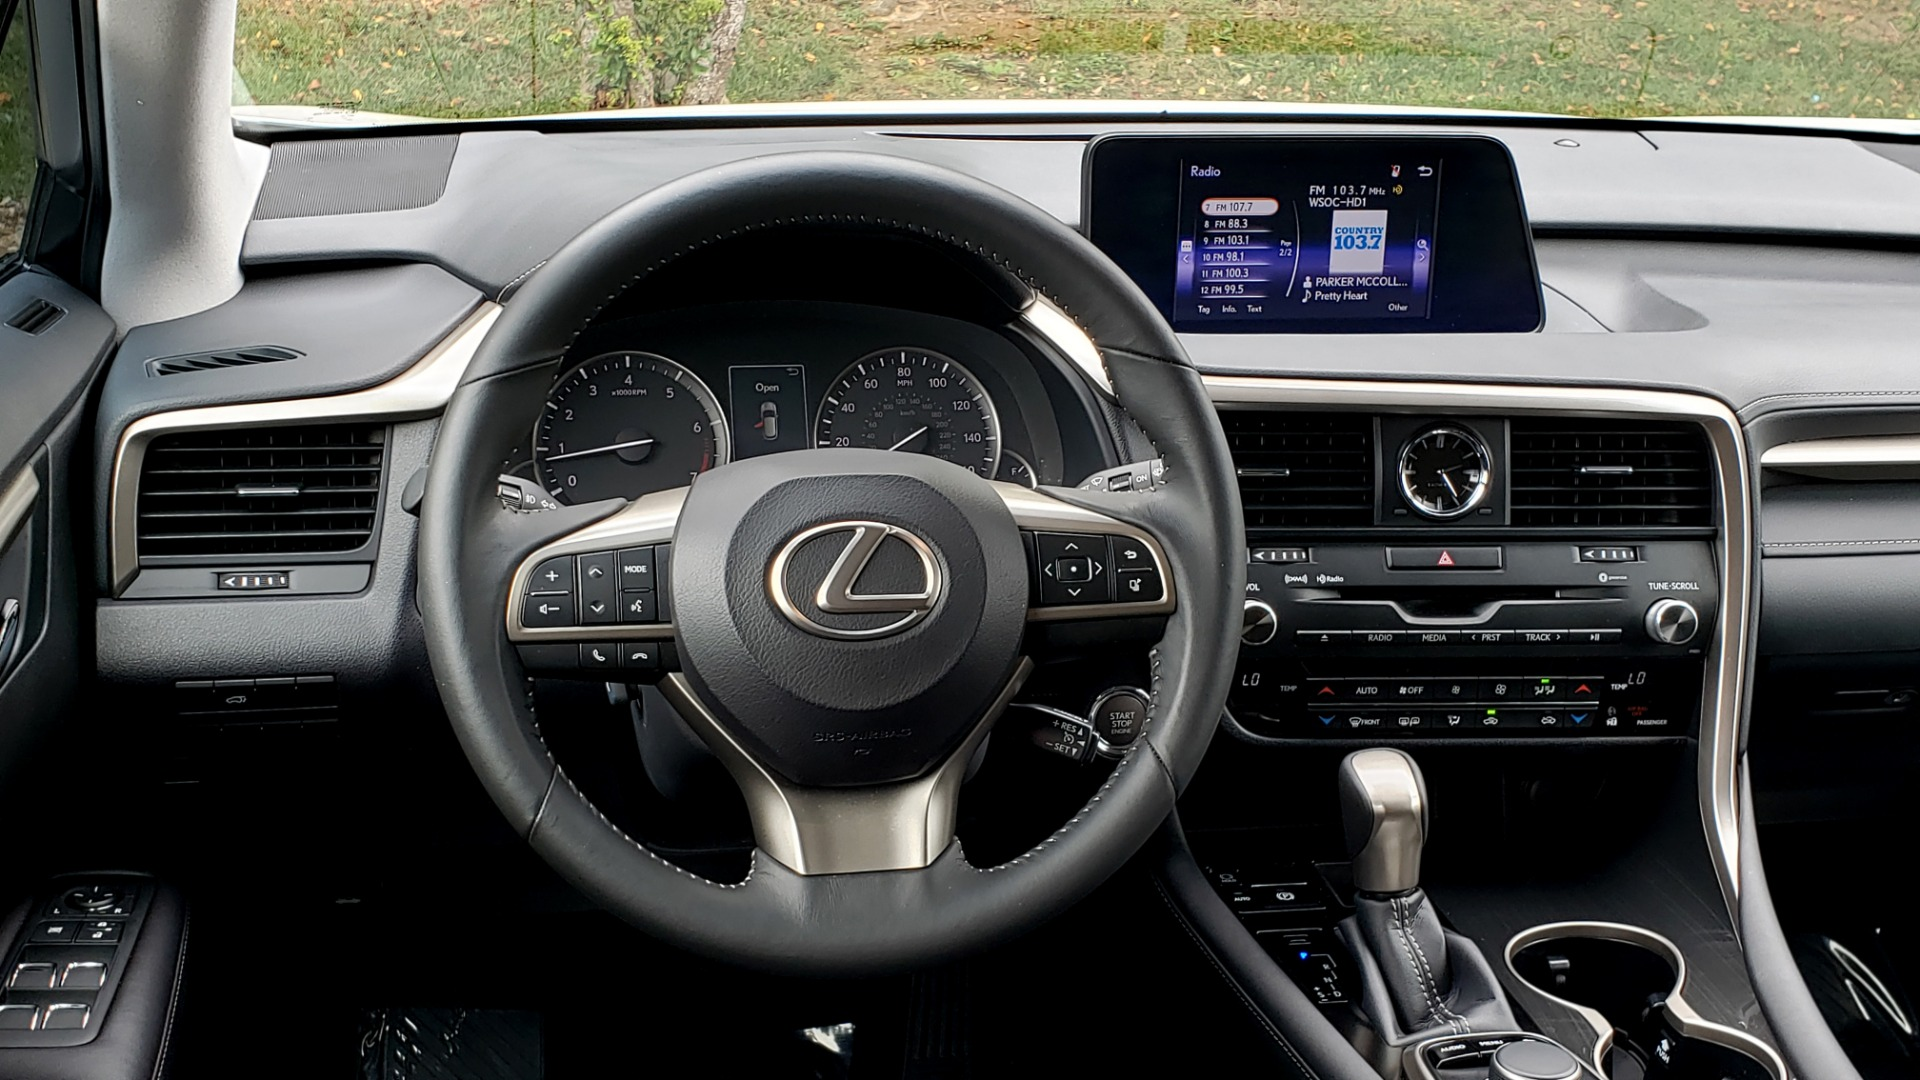 Used 2016 Lexus RX 350 FWD / 4-DR / 3.5L V6 / 8-SPD AUTO / LEATHER / REARVIEW for sale Sold at Formula Imports in Charlotte NC 28227 40